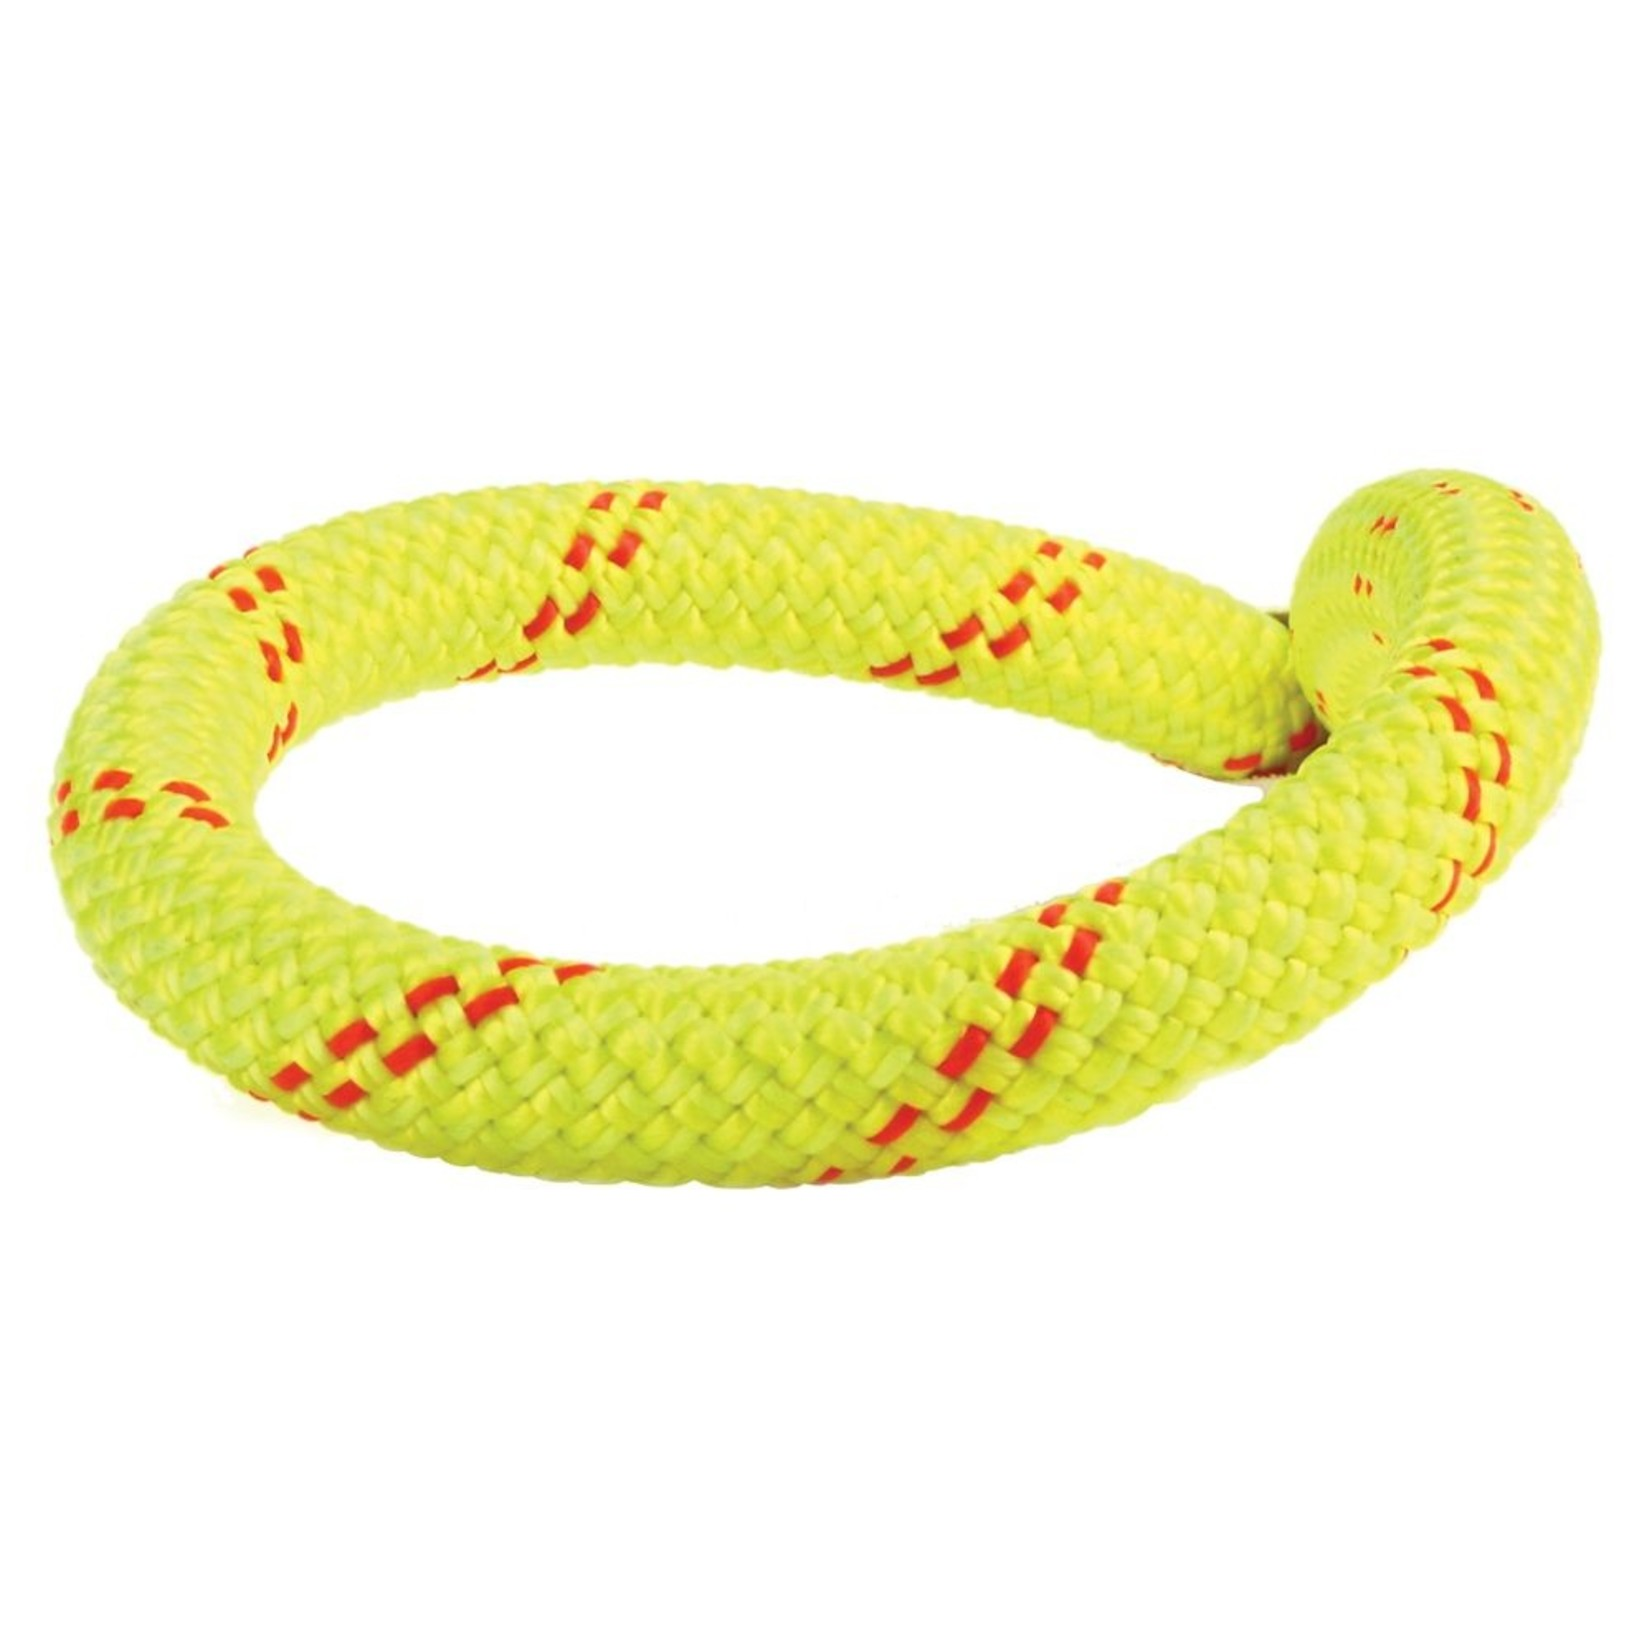 EdelWeiss Edel Weiss Canyon Rope 9.6MM